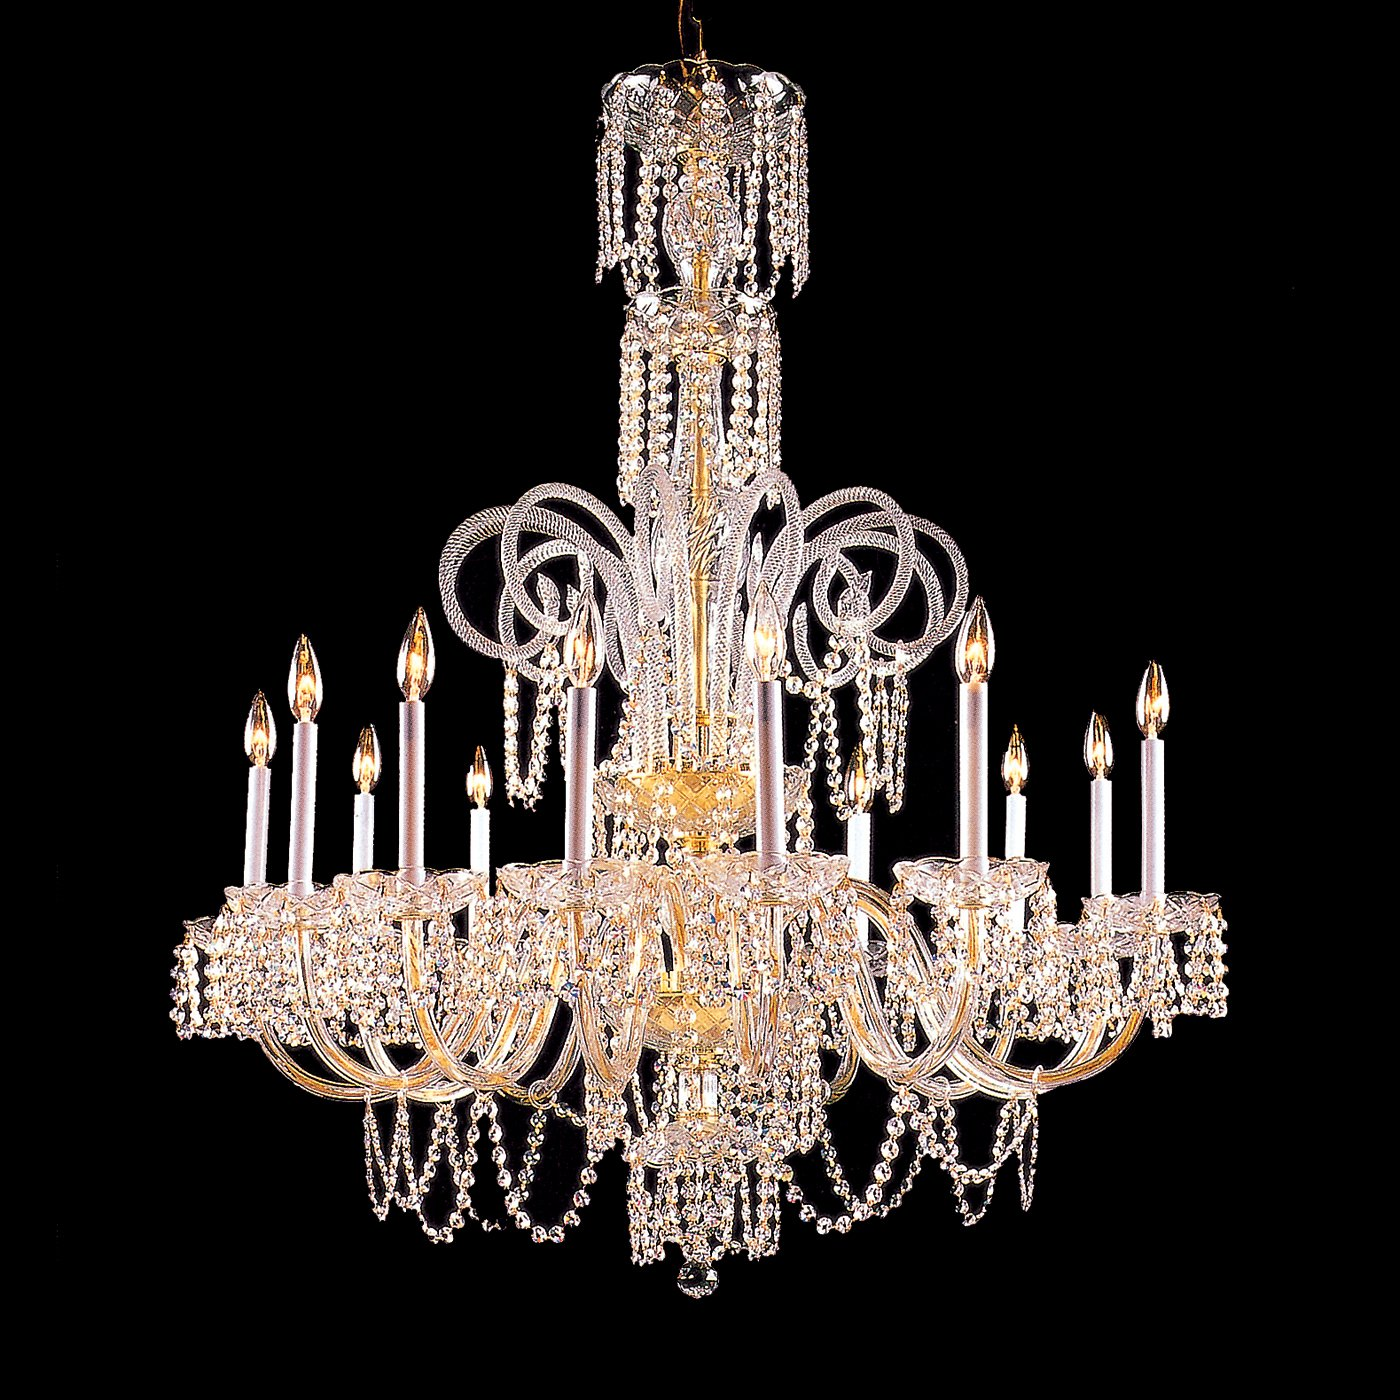 Crystal chandeliers for traditional dining rooms for Dining room chandeliers